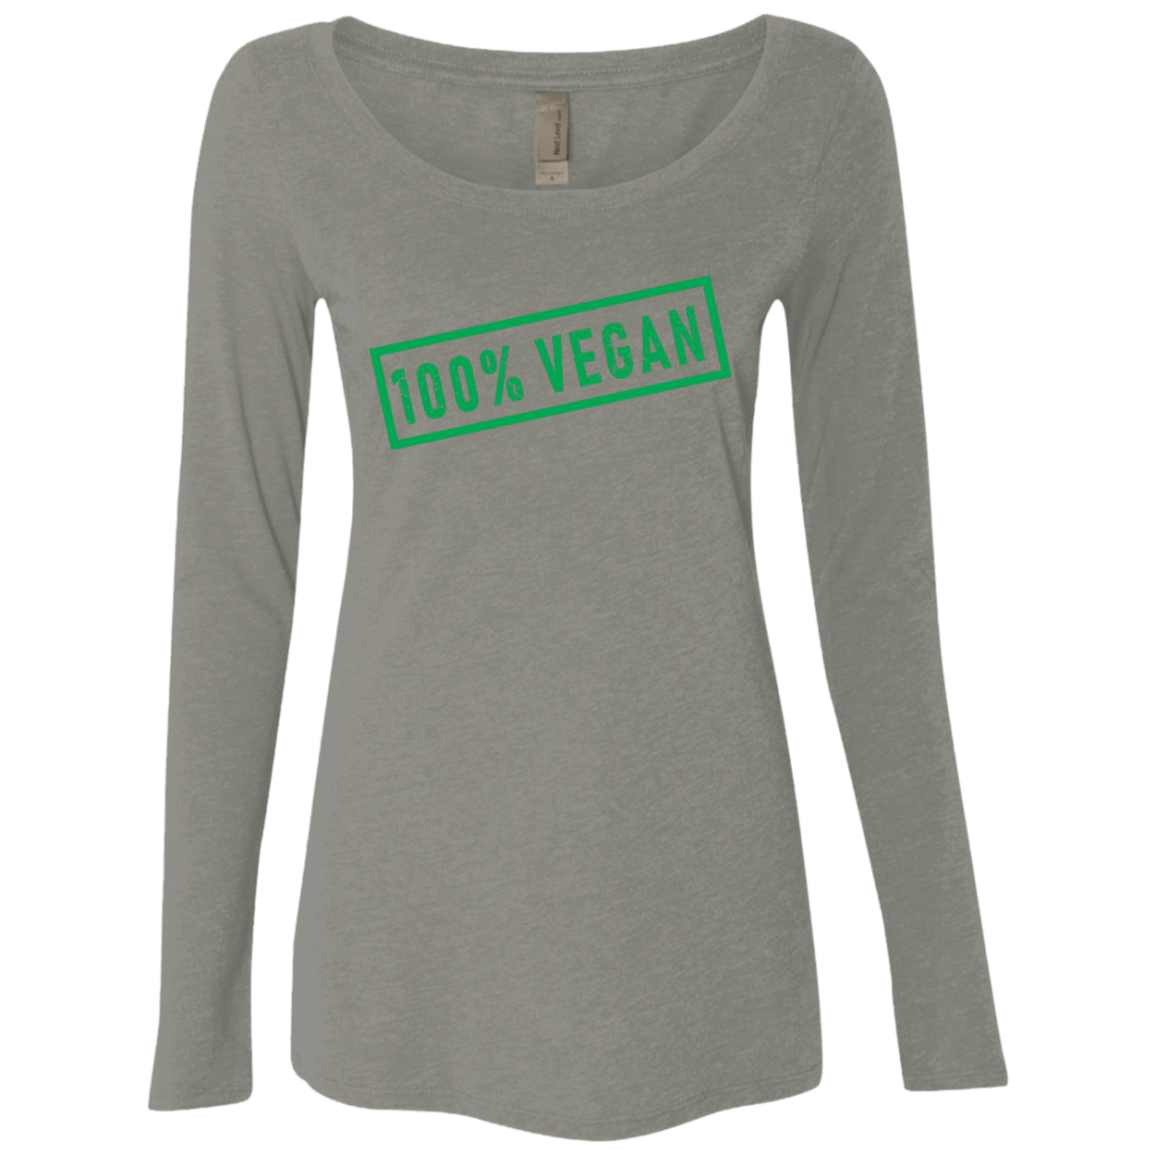 100' Vegan Women's Long Sleeve Tee